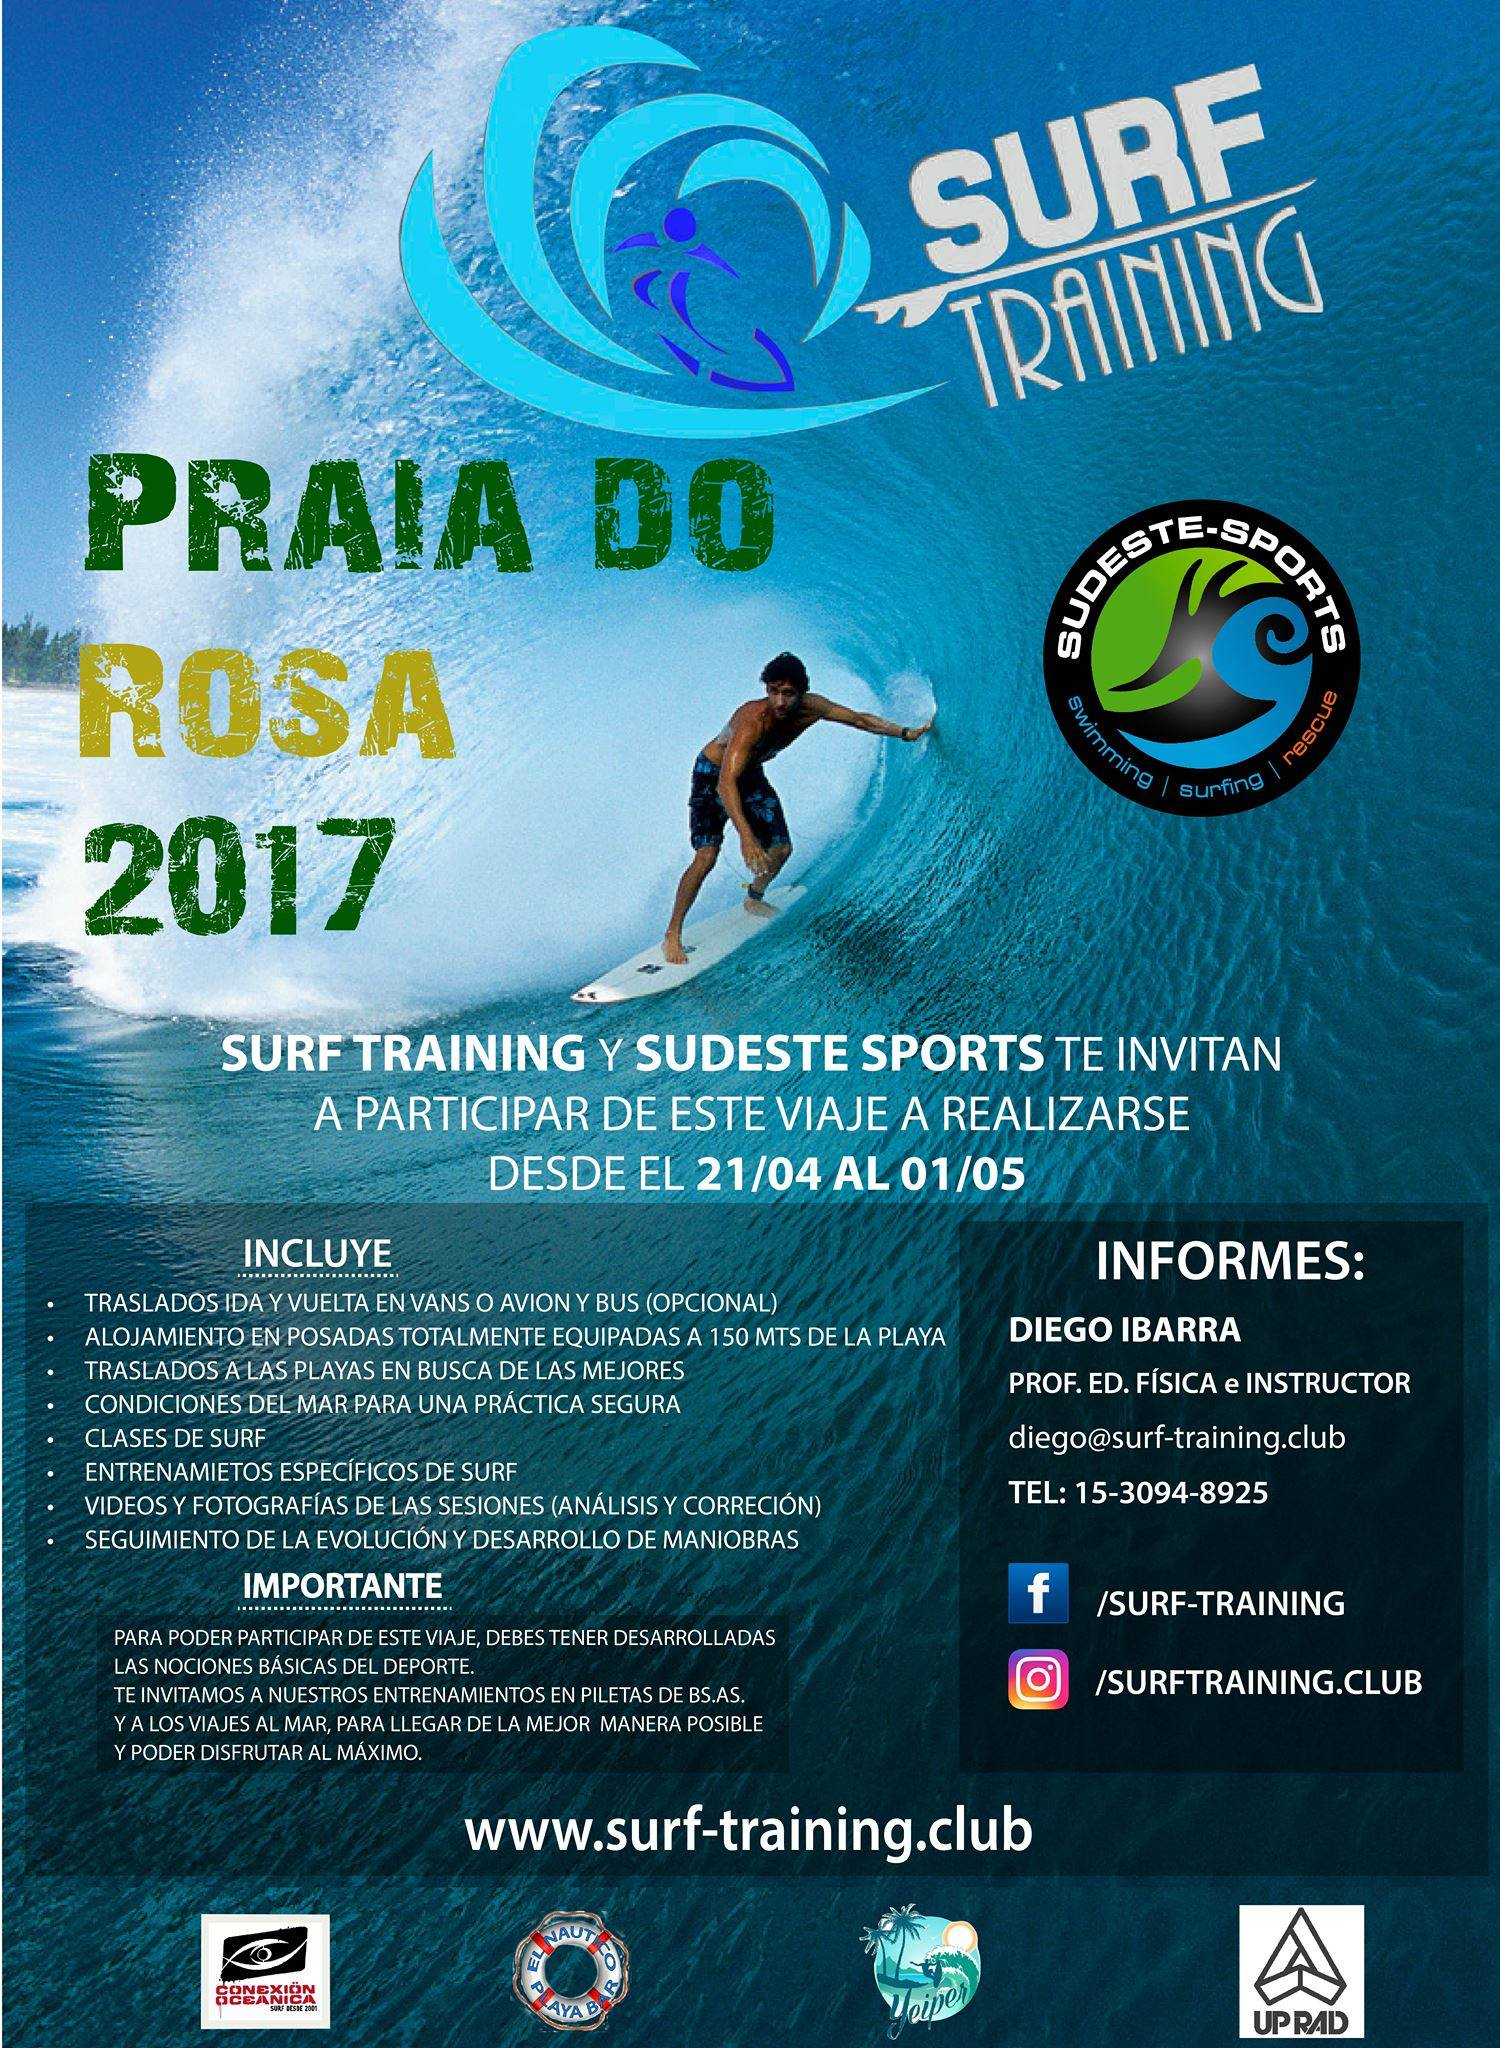 Surf Training, Club de Surf